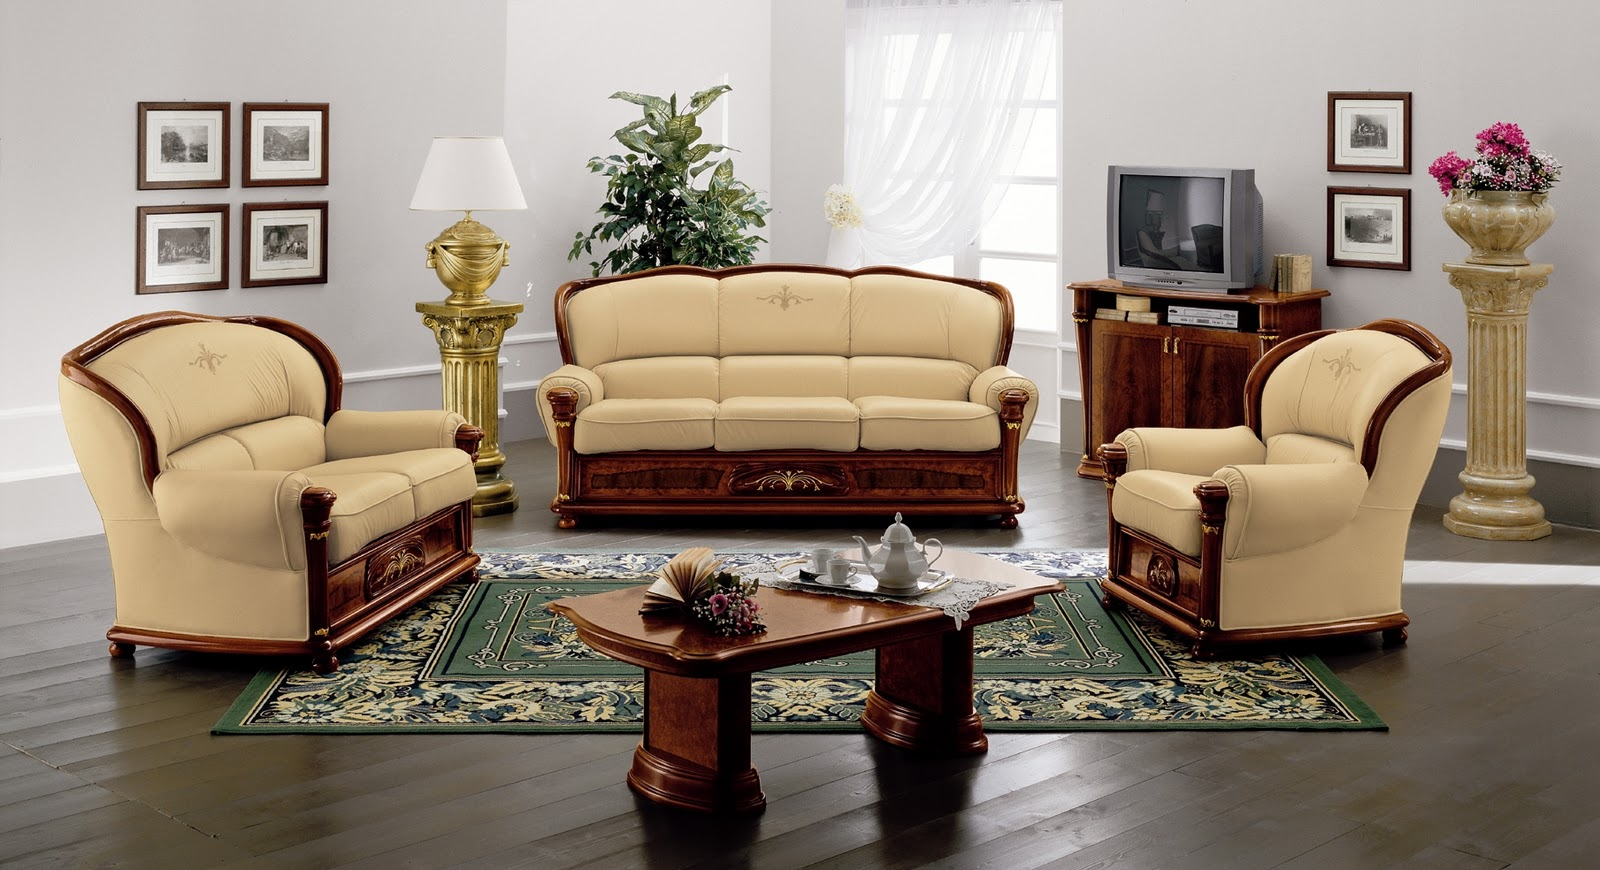 Magazine for asian women asian culture sofa set for Oriental sofa designs